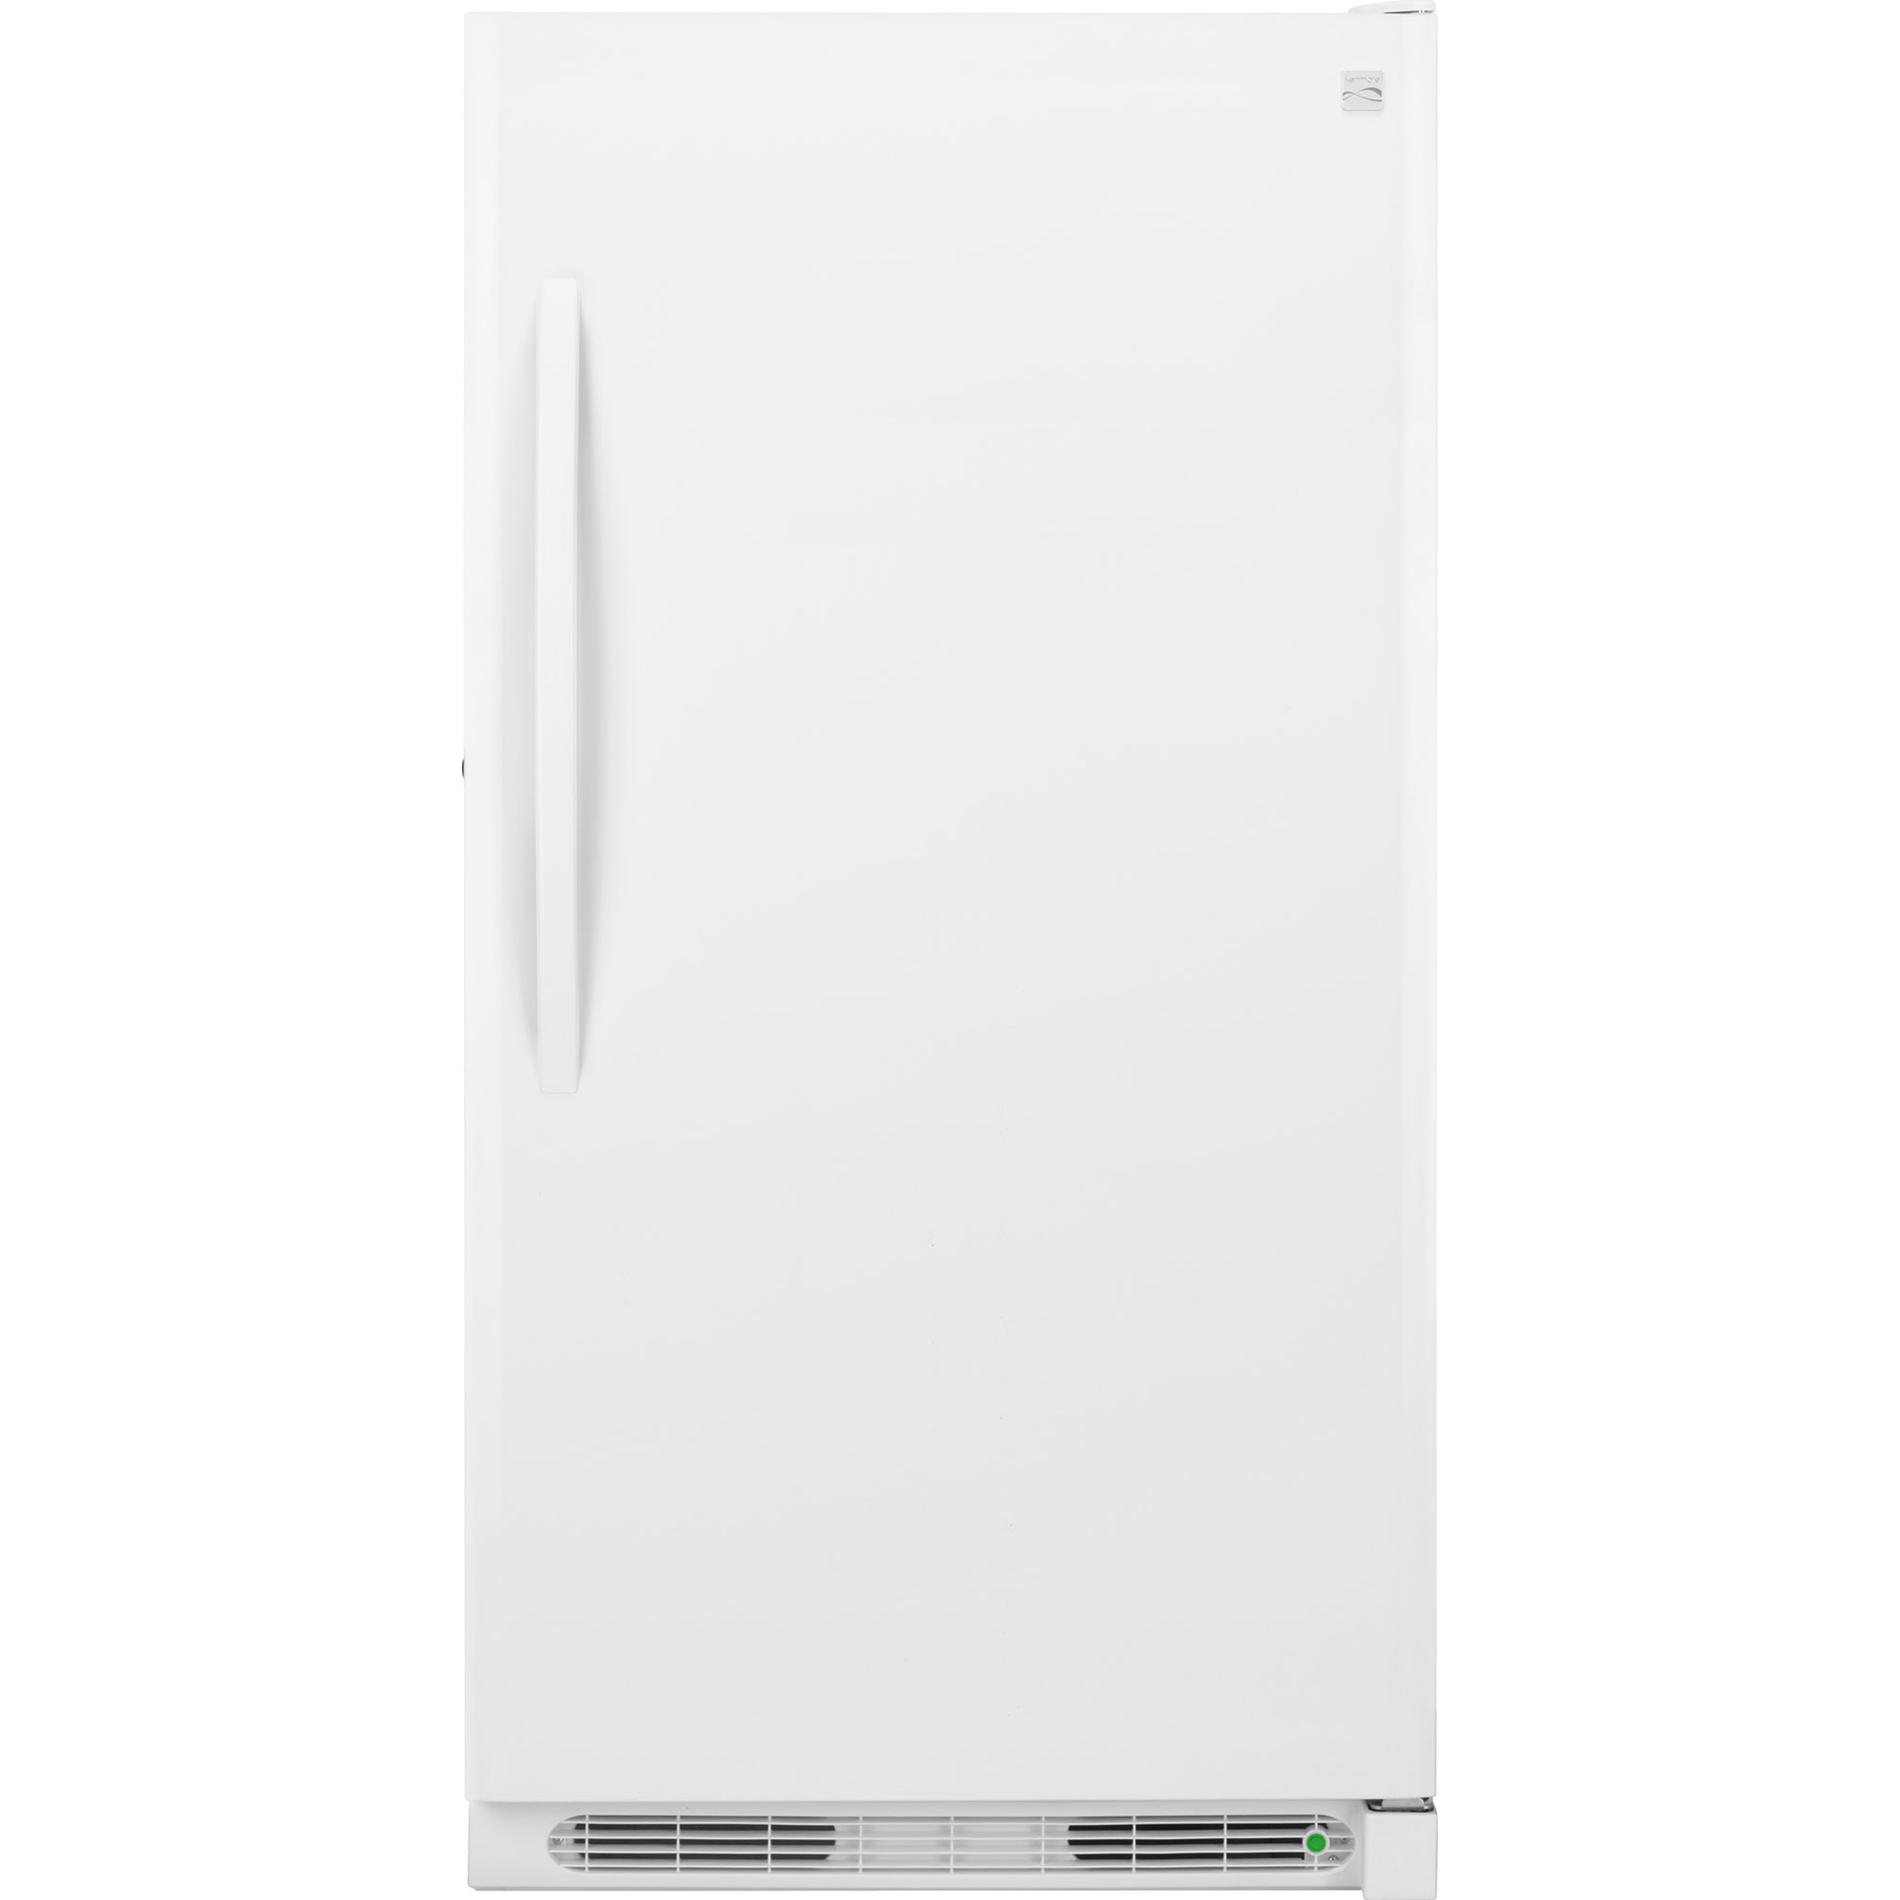 small resolution of kenmore 22042 20 2 cu ft frost free upright freezer white freezer wiring schematic wire schematic for kenmore upright freezer